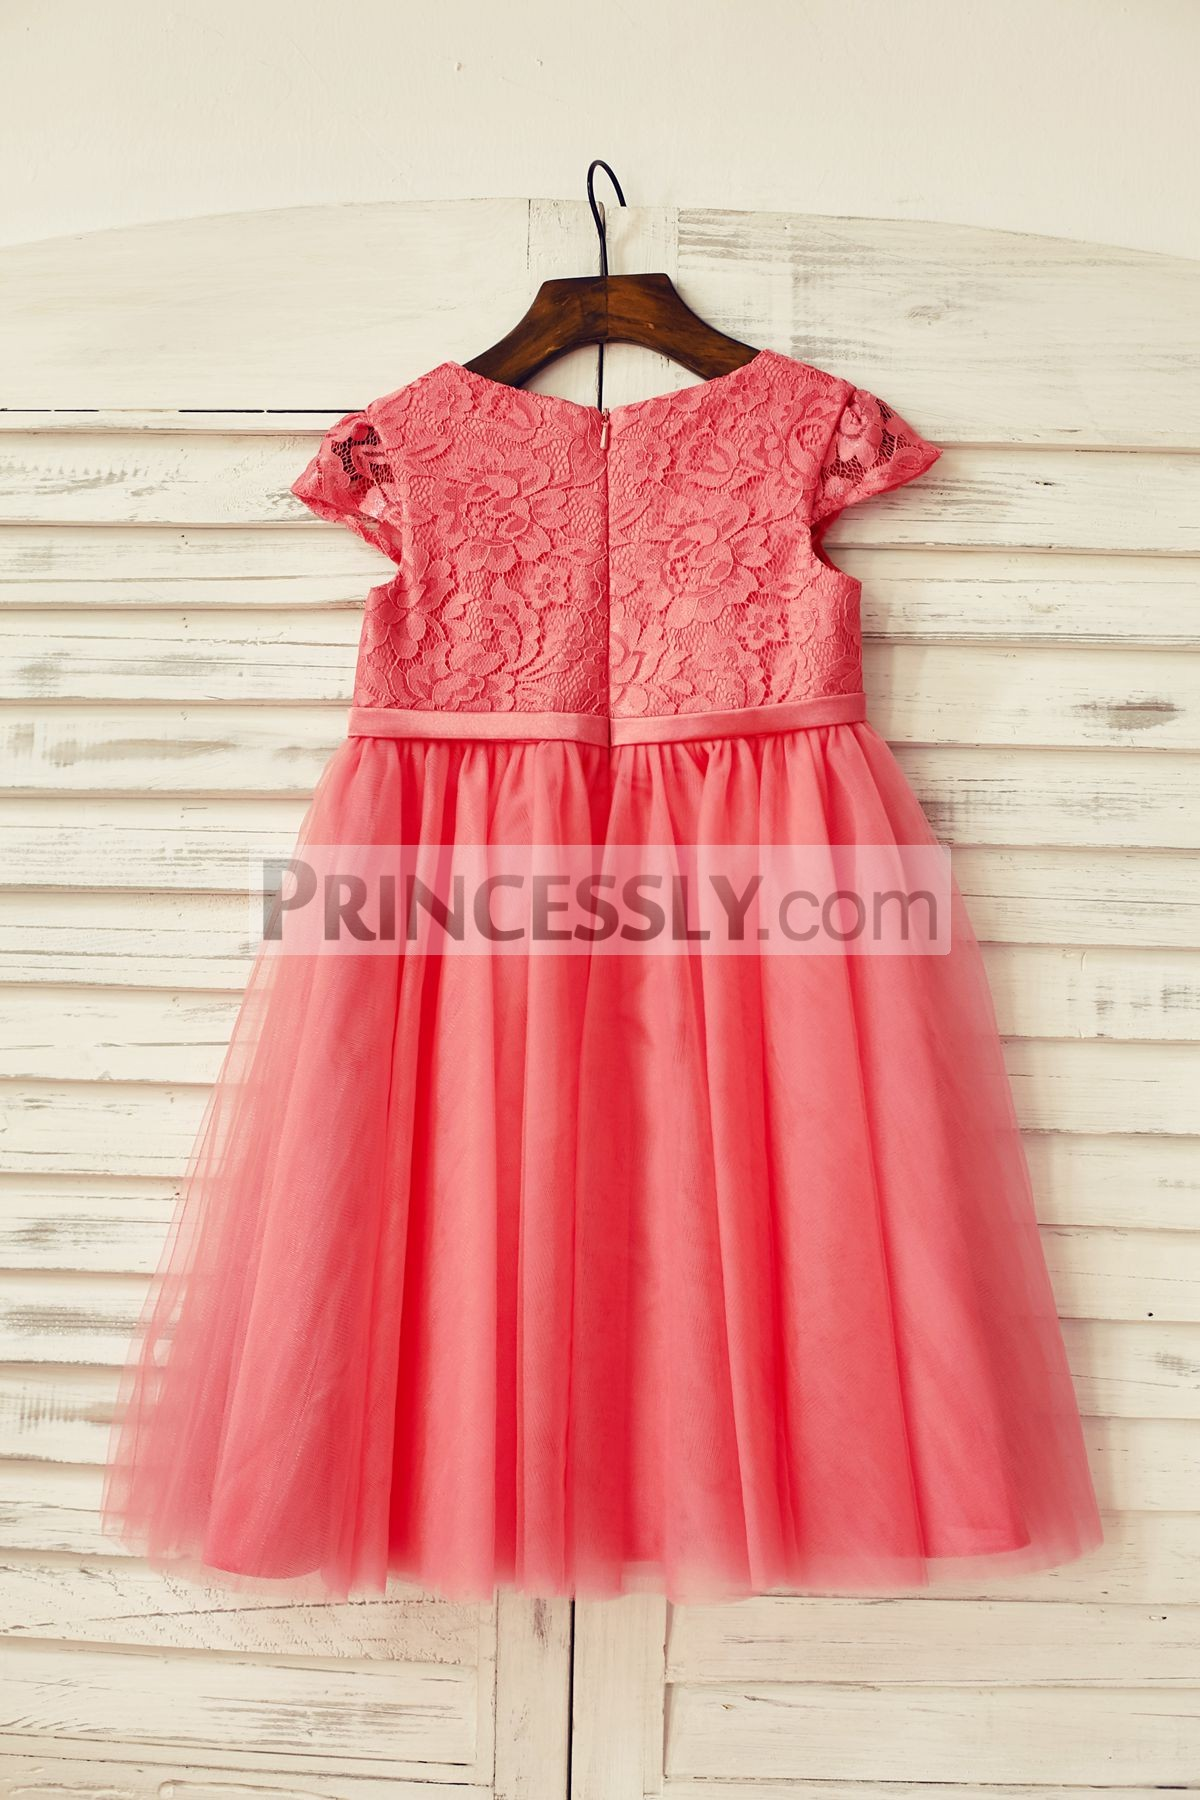 Sheer cap sleeves coral lace tulle wedding baby girl dress